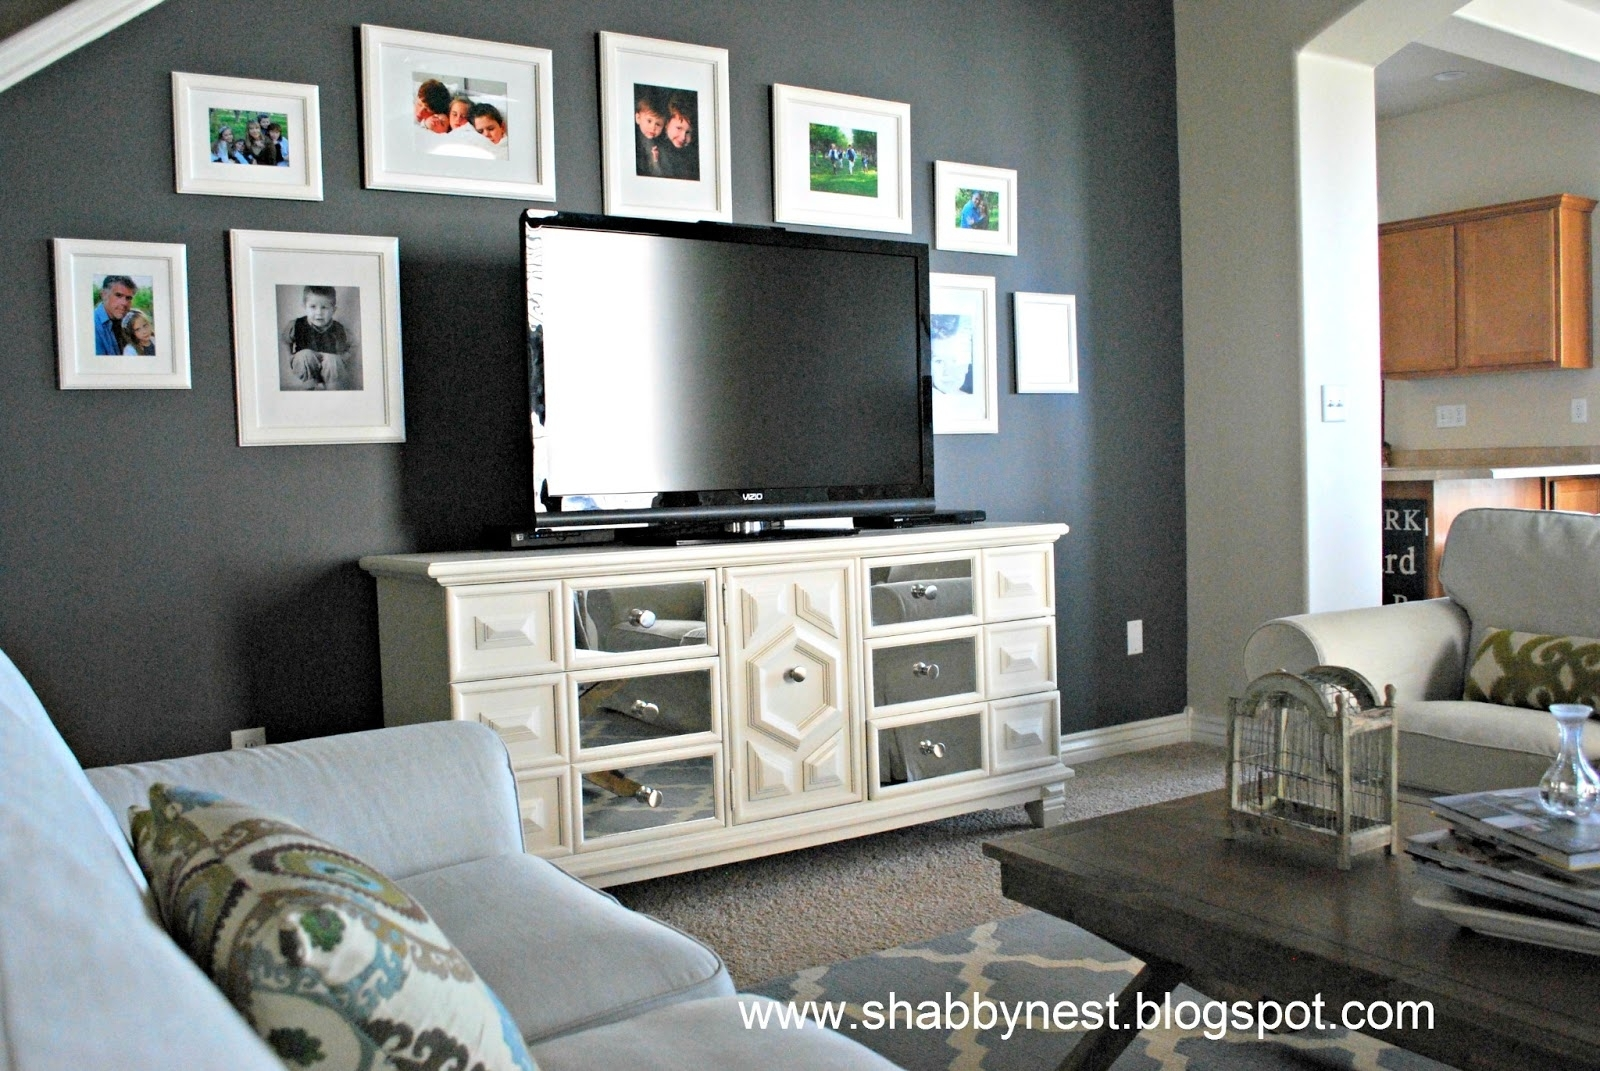 Wall Decor: Awesome Decorating A Living Room With Gray Walls Within Most Up To Date Wall Accents For Small Living Room (View 14 of 15)